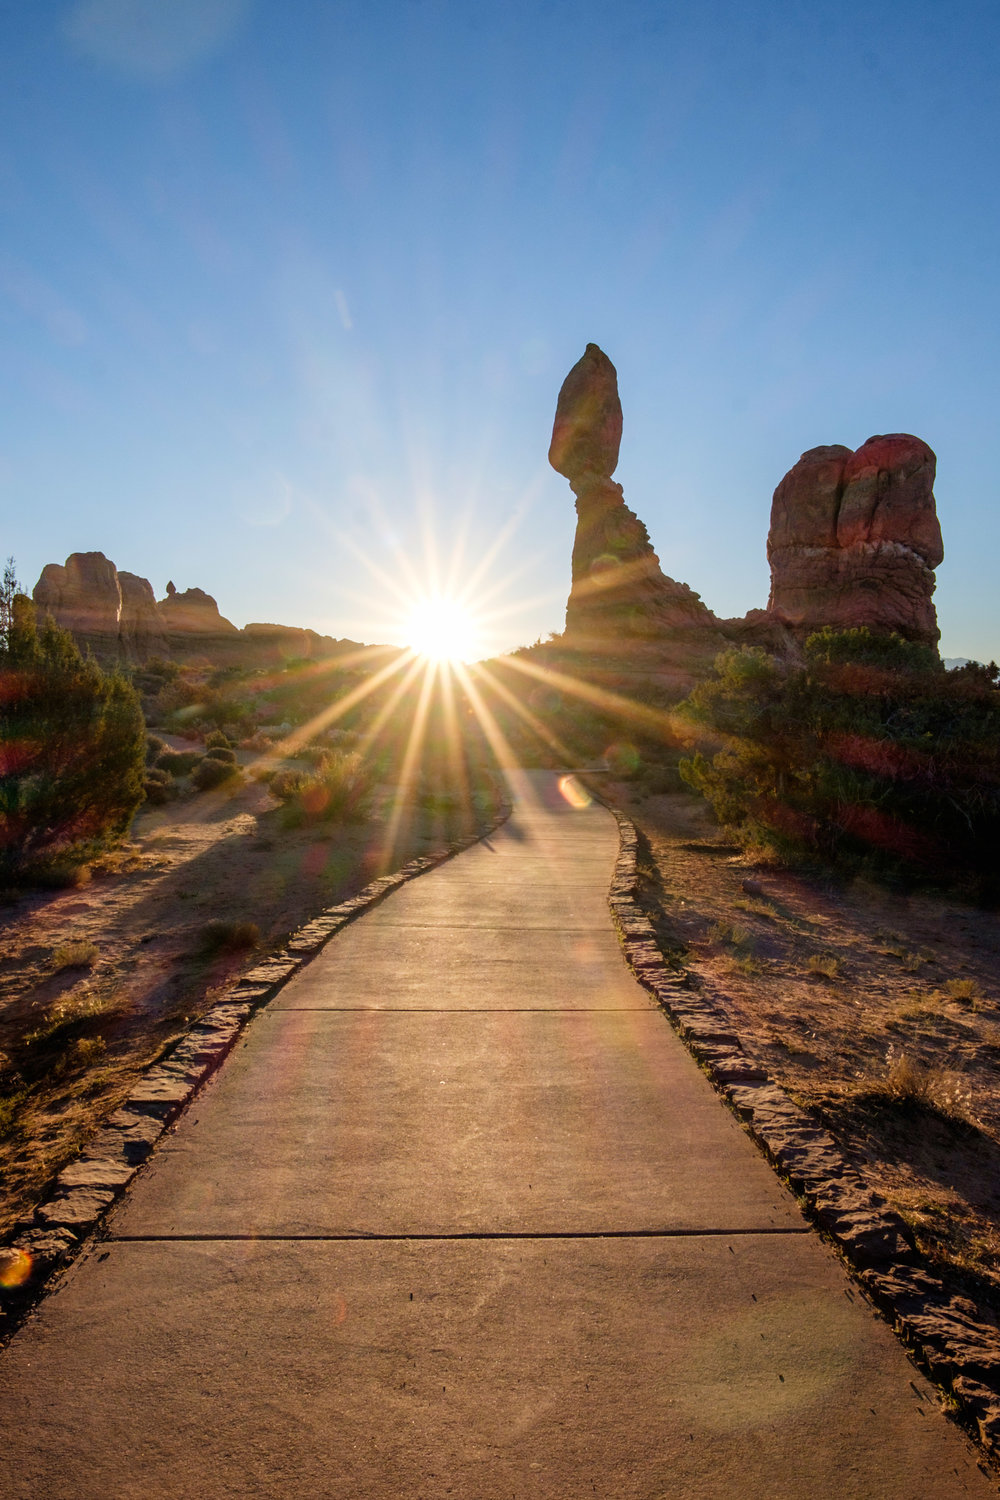 There are some really nice hikes around Balanced rock, especially in the early morning sun.